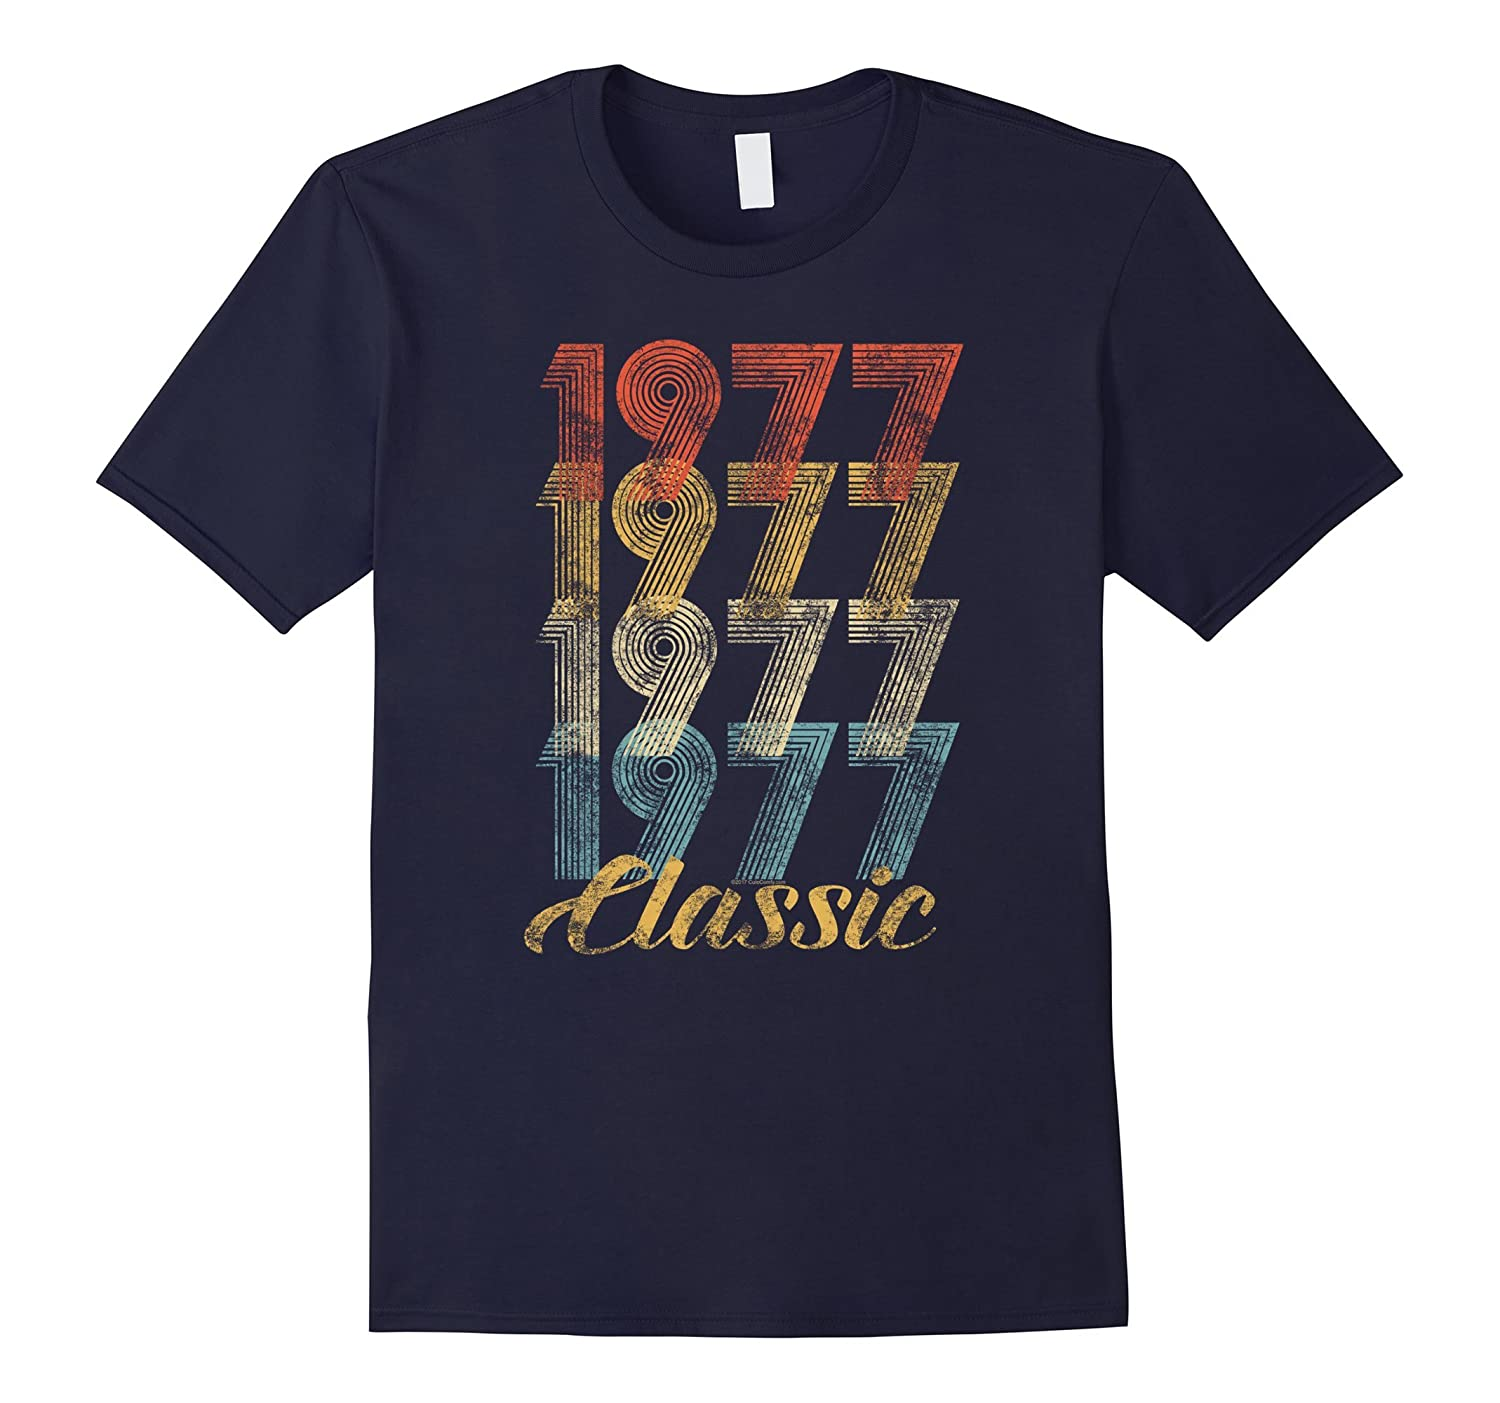 40th Birthday Gift Vintage 1977 T-Shirt for Men & Women-T-Shirt